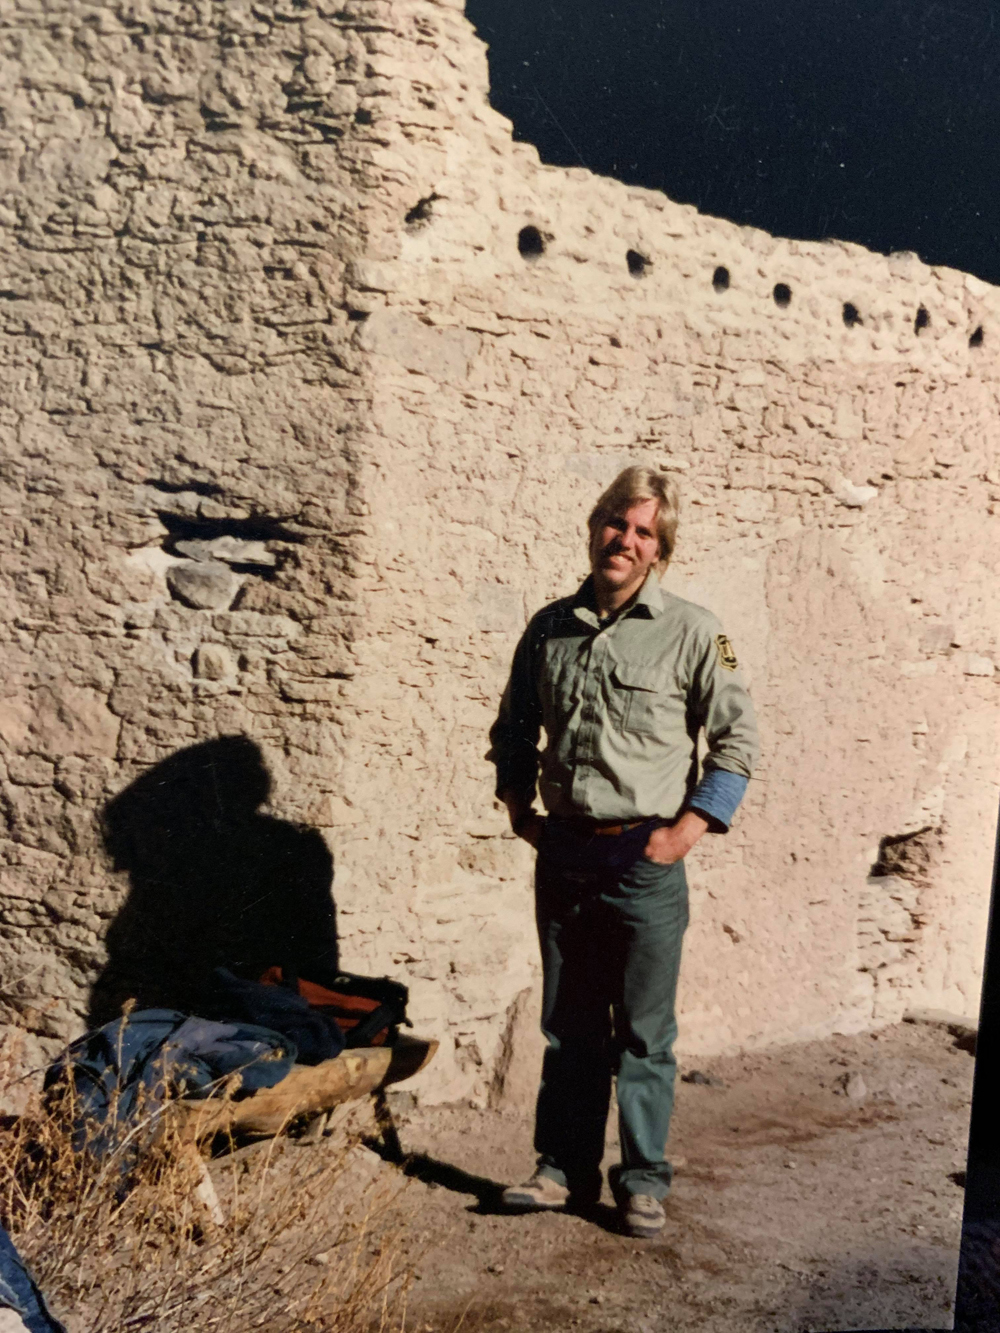 Joe Kurmaskie in 1990 during his stint as a seasonal ranger for the National Forest Service at the Gila Cliff Dwellings in New Mexico. Photo by Dale